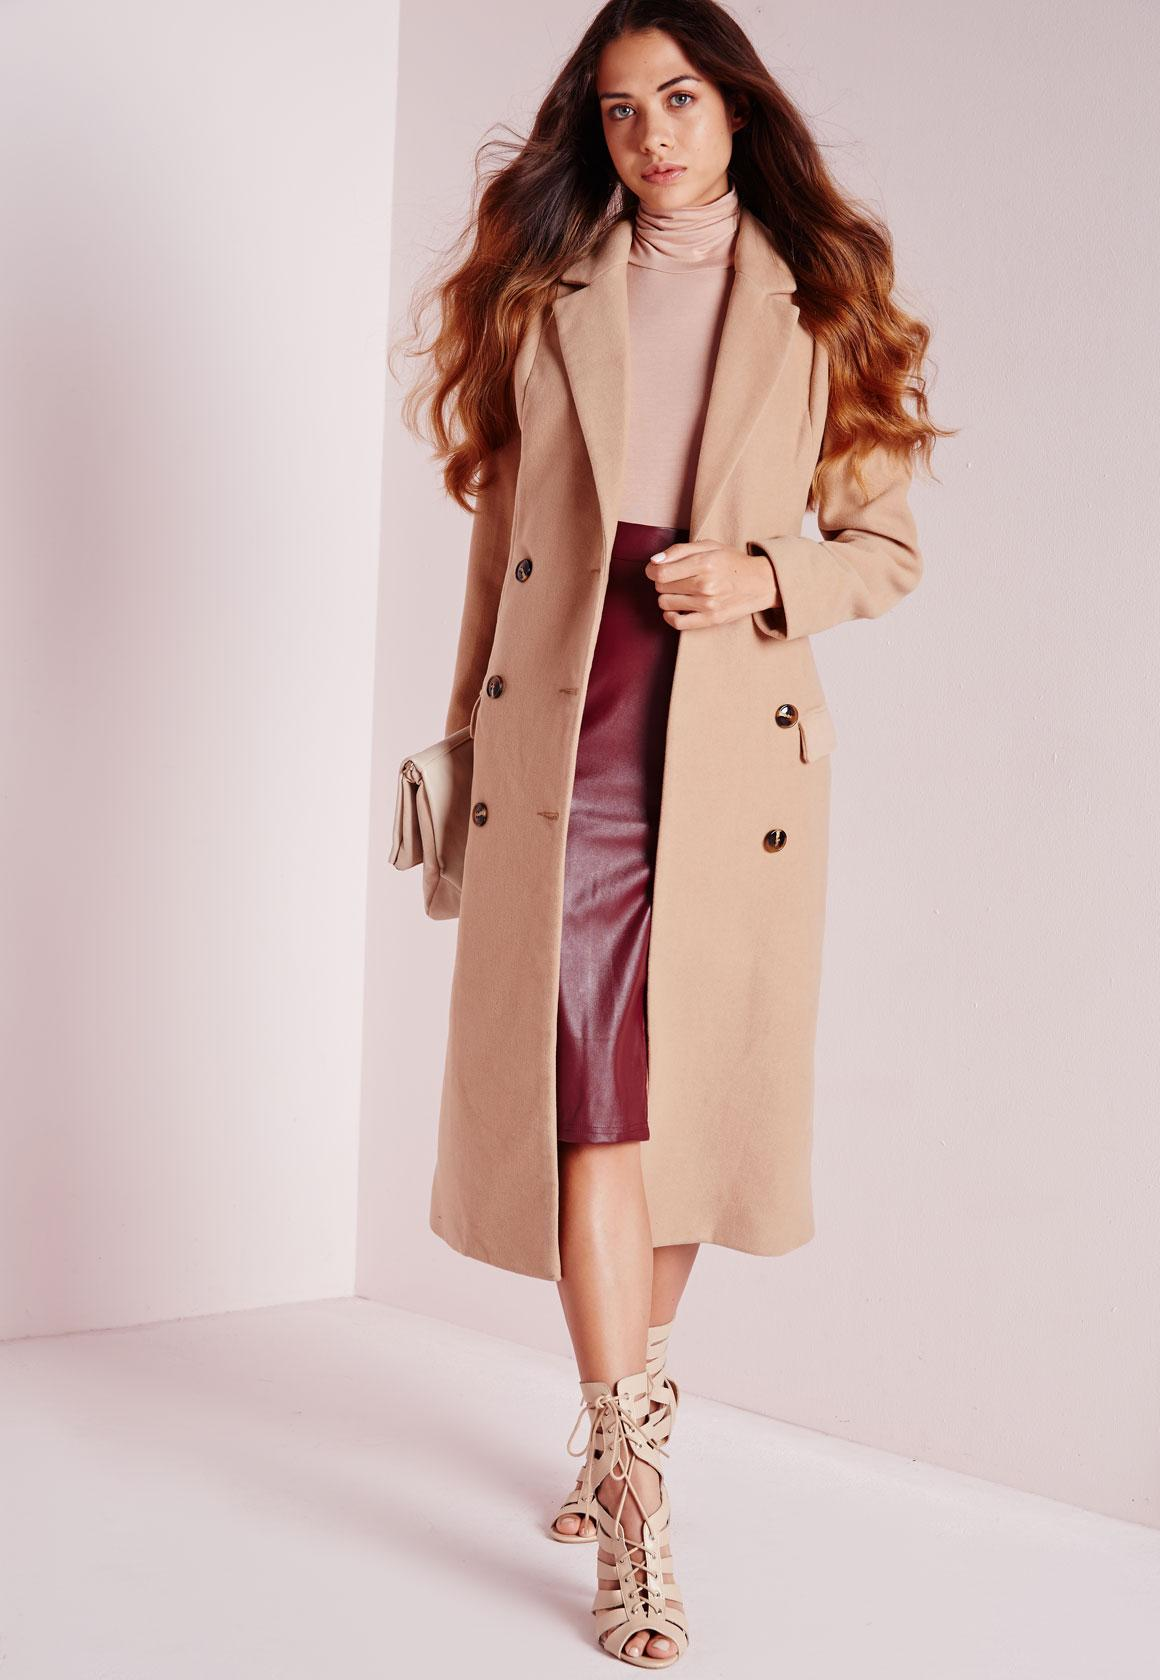 Double Breasted Tailored Long Faux Wool Coat Camel   Missguided